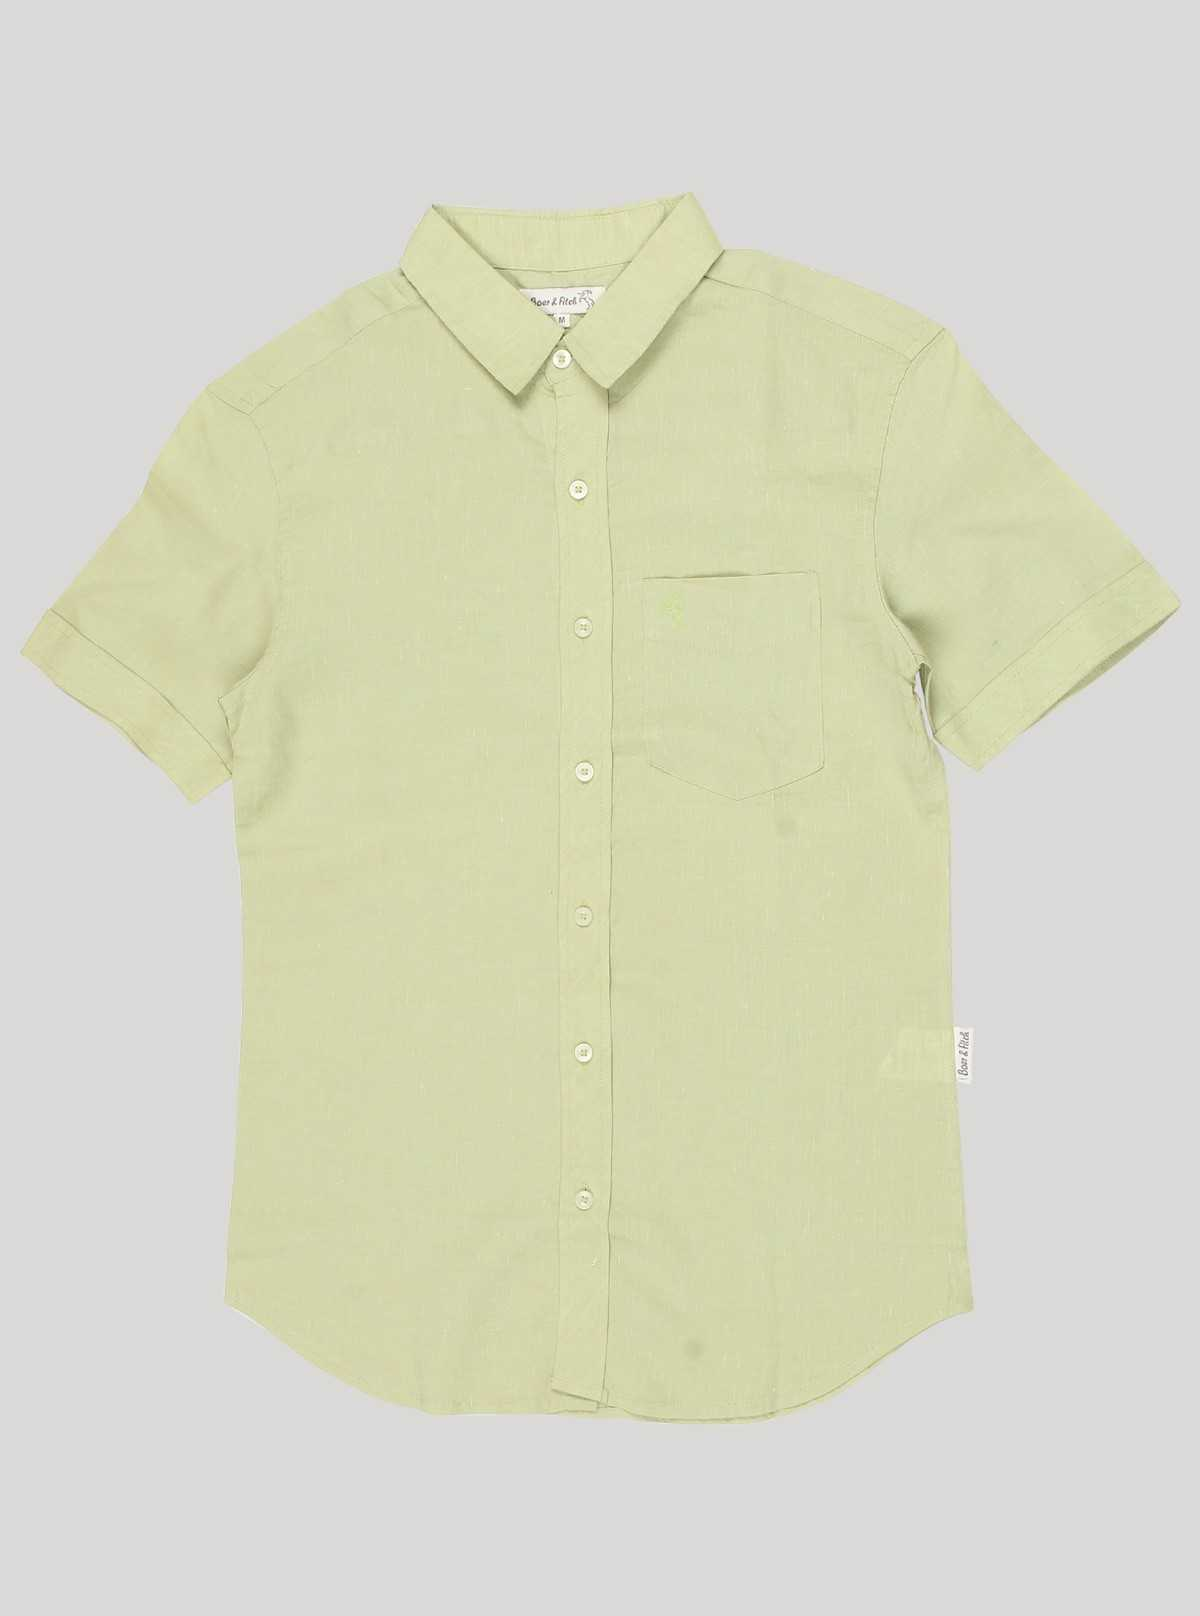 Slim Fit - Lime Linen Shirt Boer and Fitch - 3